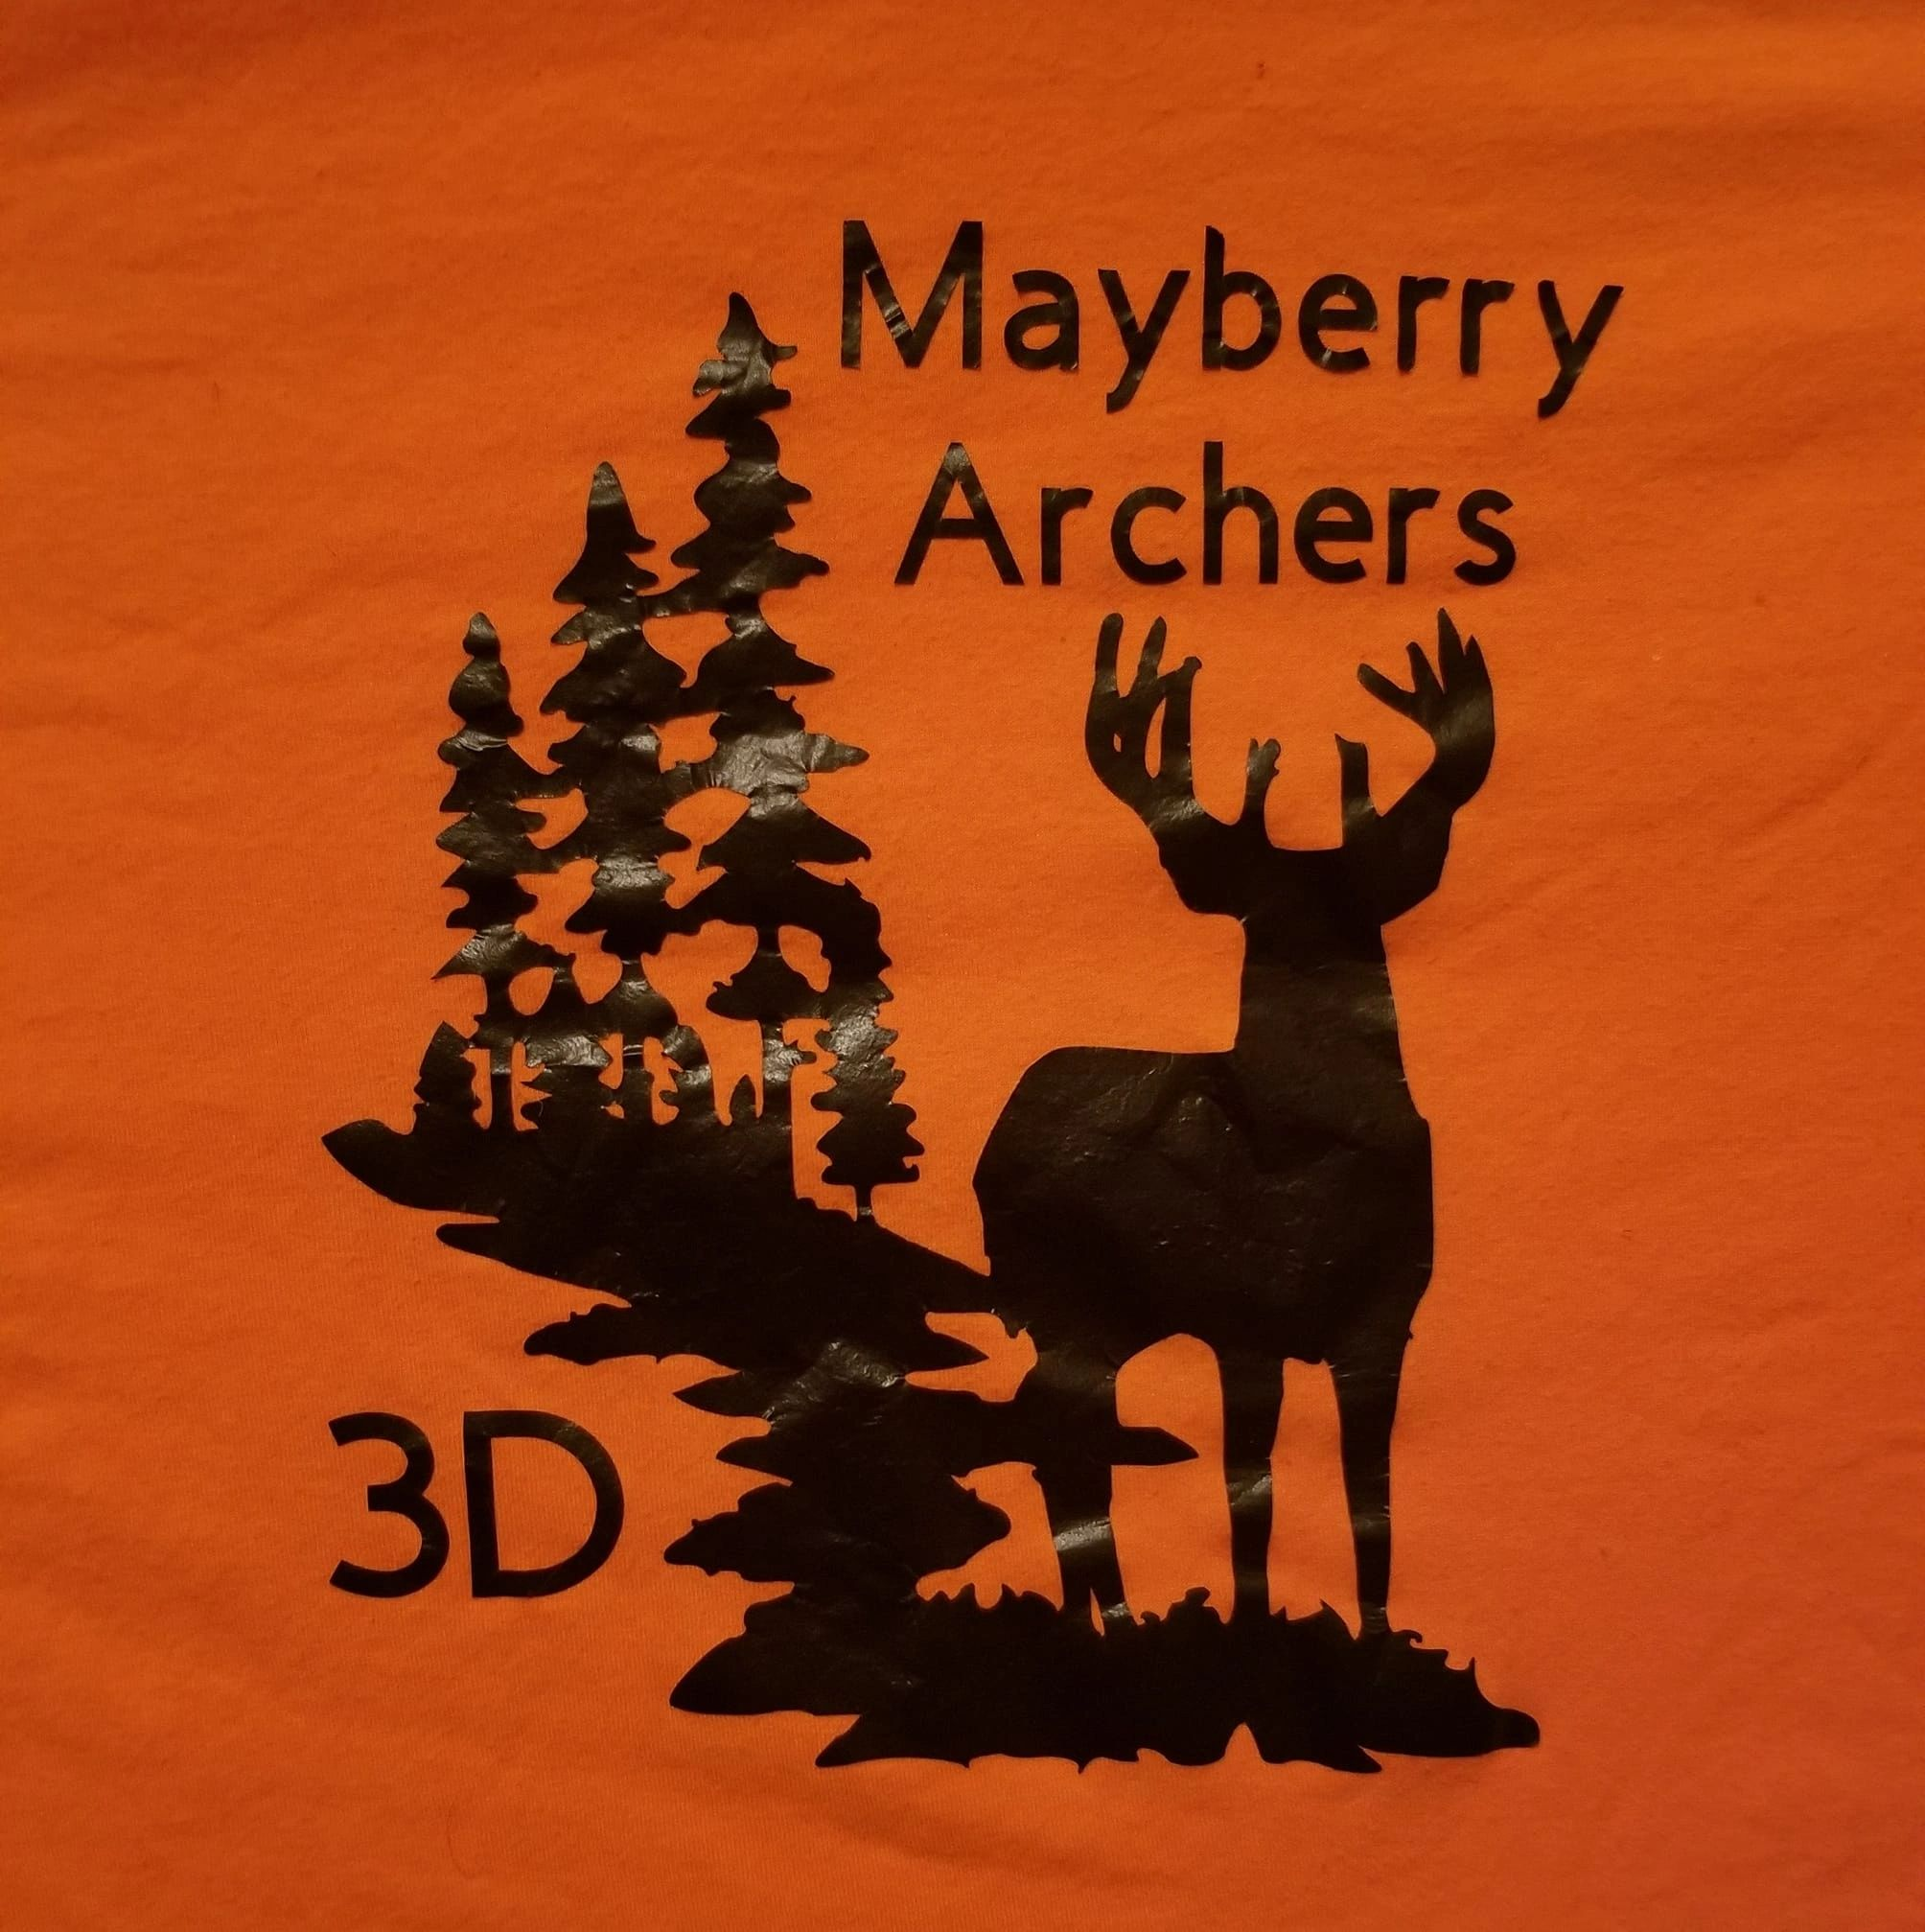 Mayberry Archers.  3D Archery.